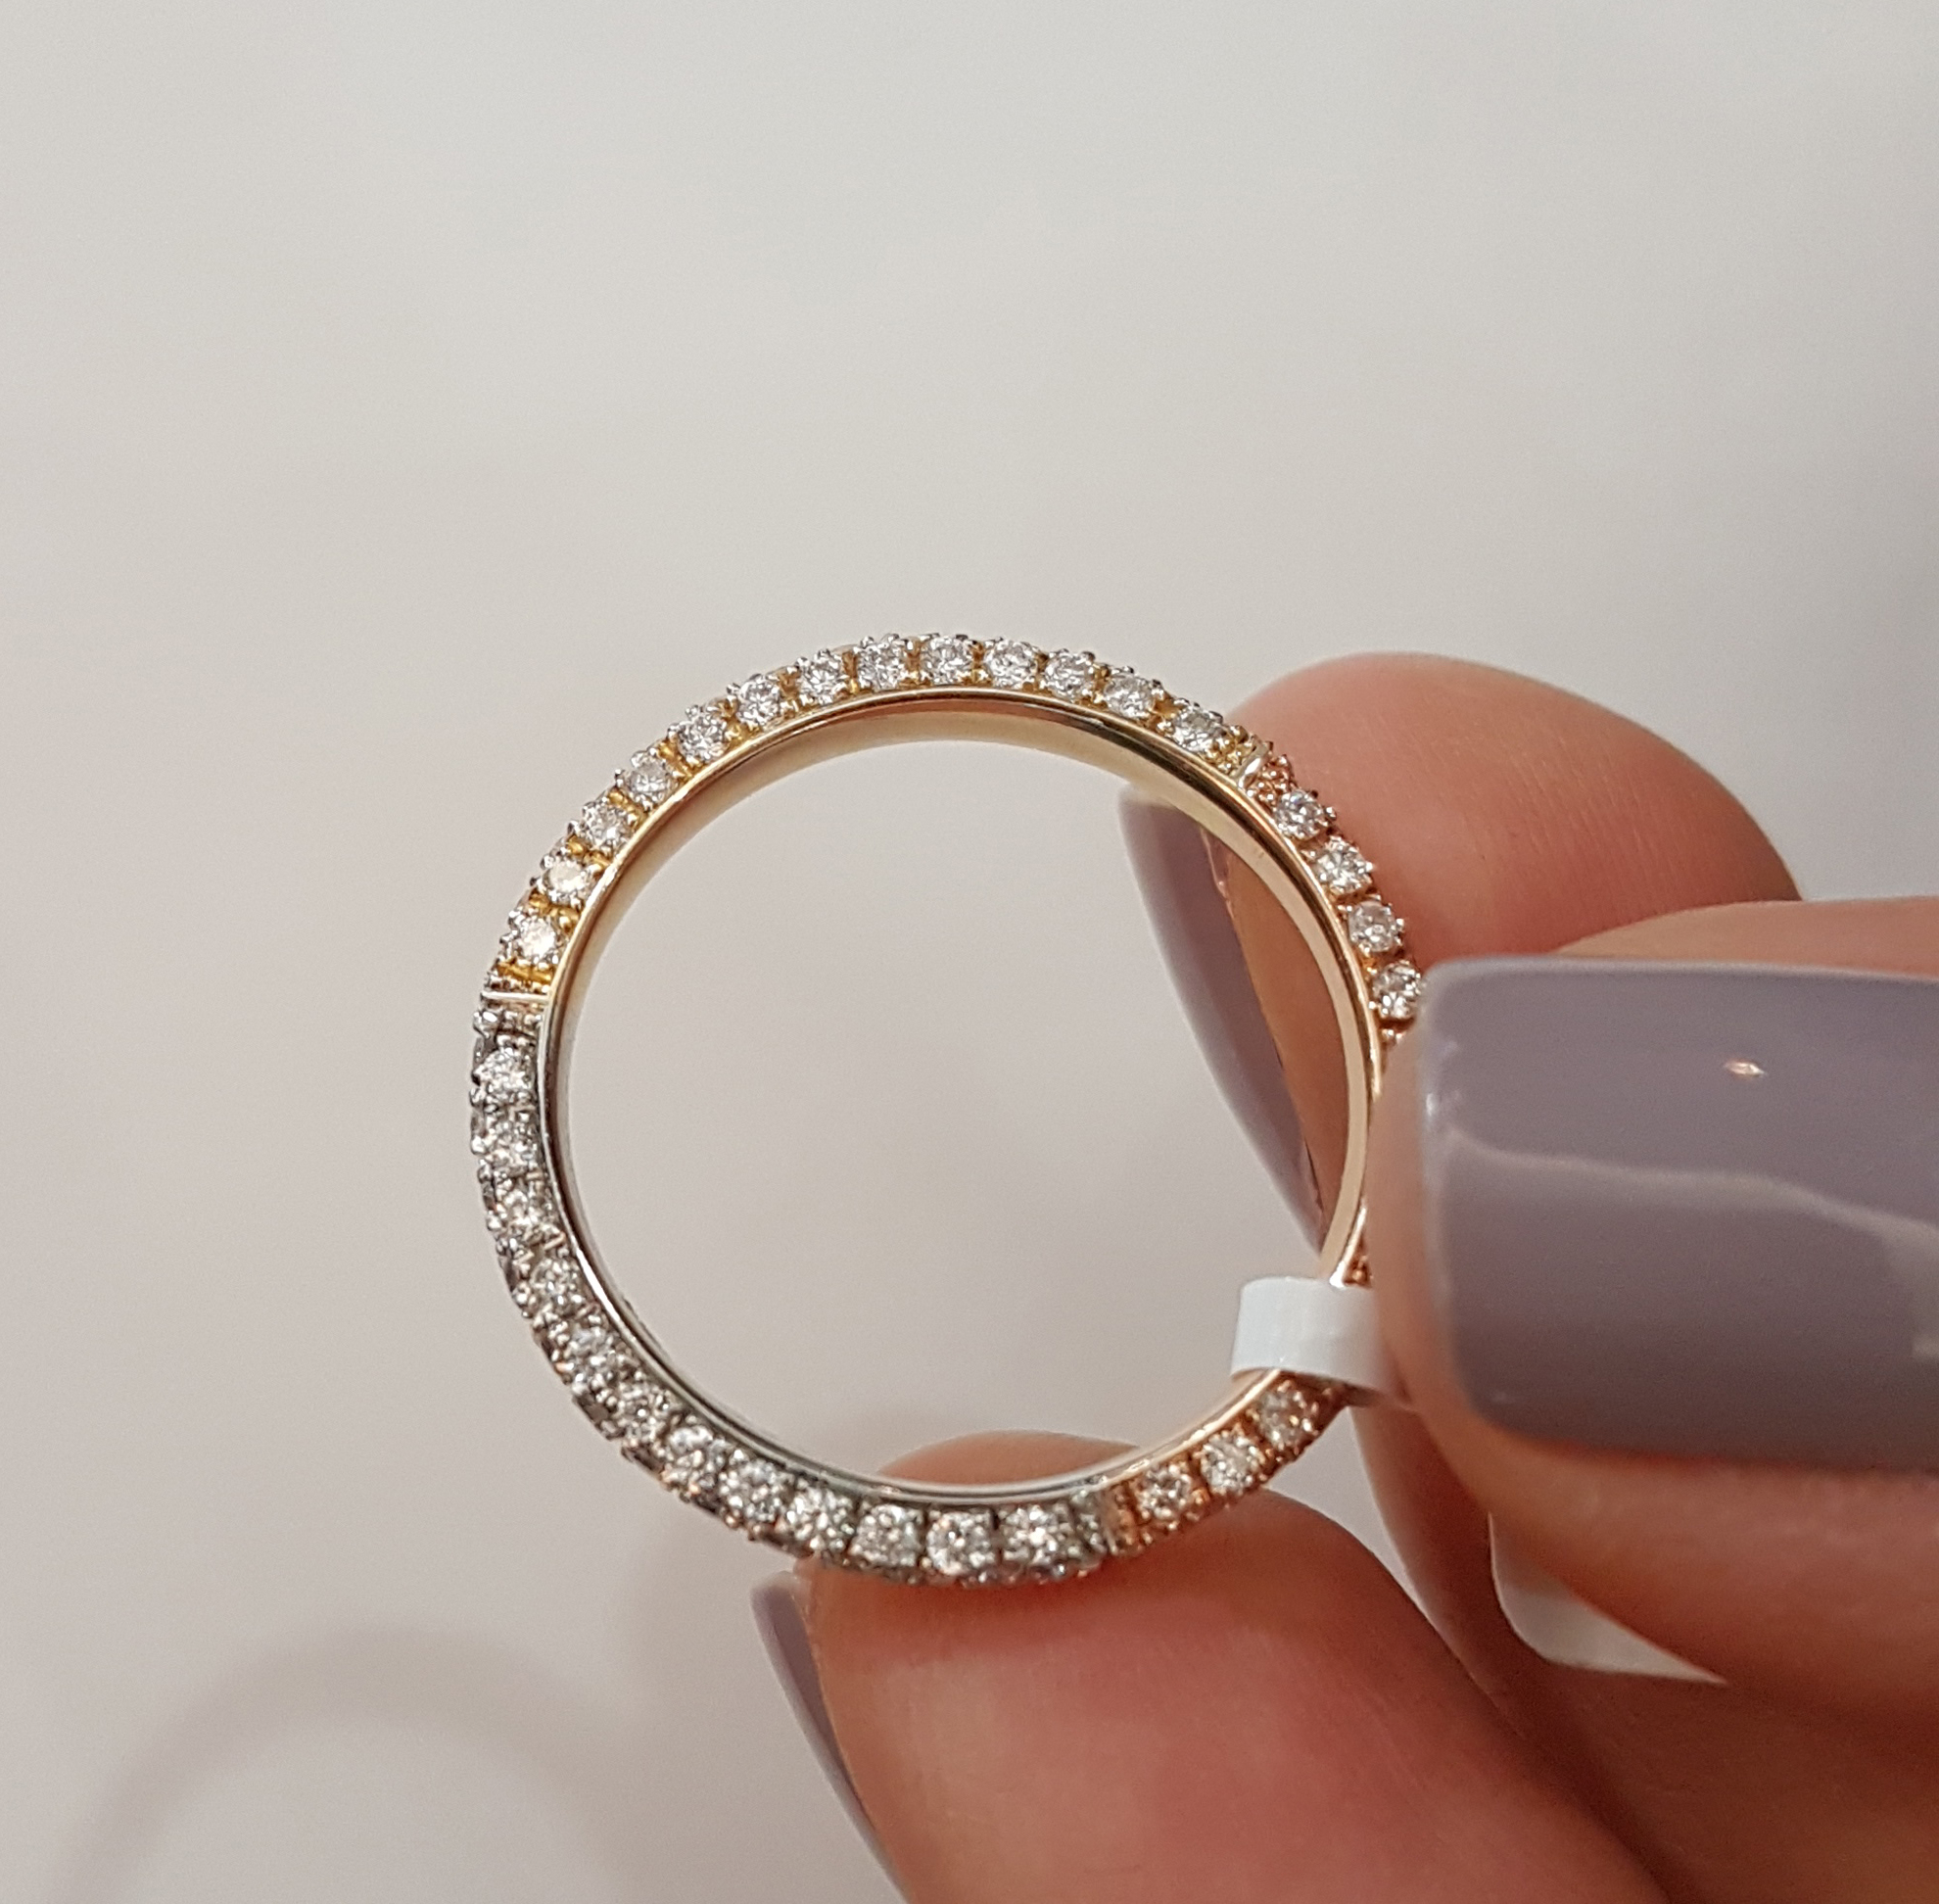 New: Multi Colored Gold Wedding Bands From Lauren B Inside 2020 Diamond Five Stone Triple Row Anniversary Bands In White Gold (View 18 of 25)